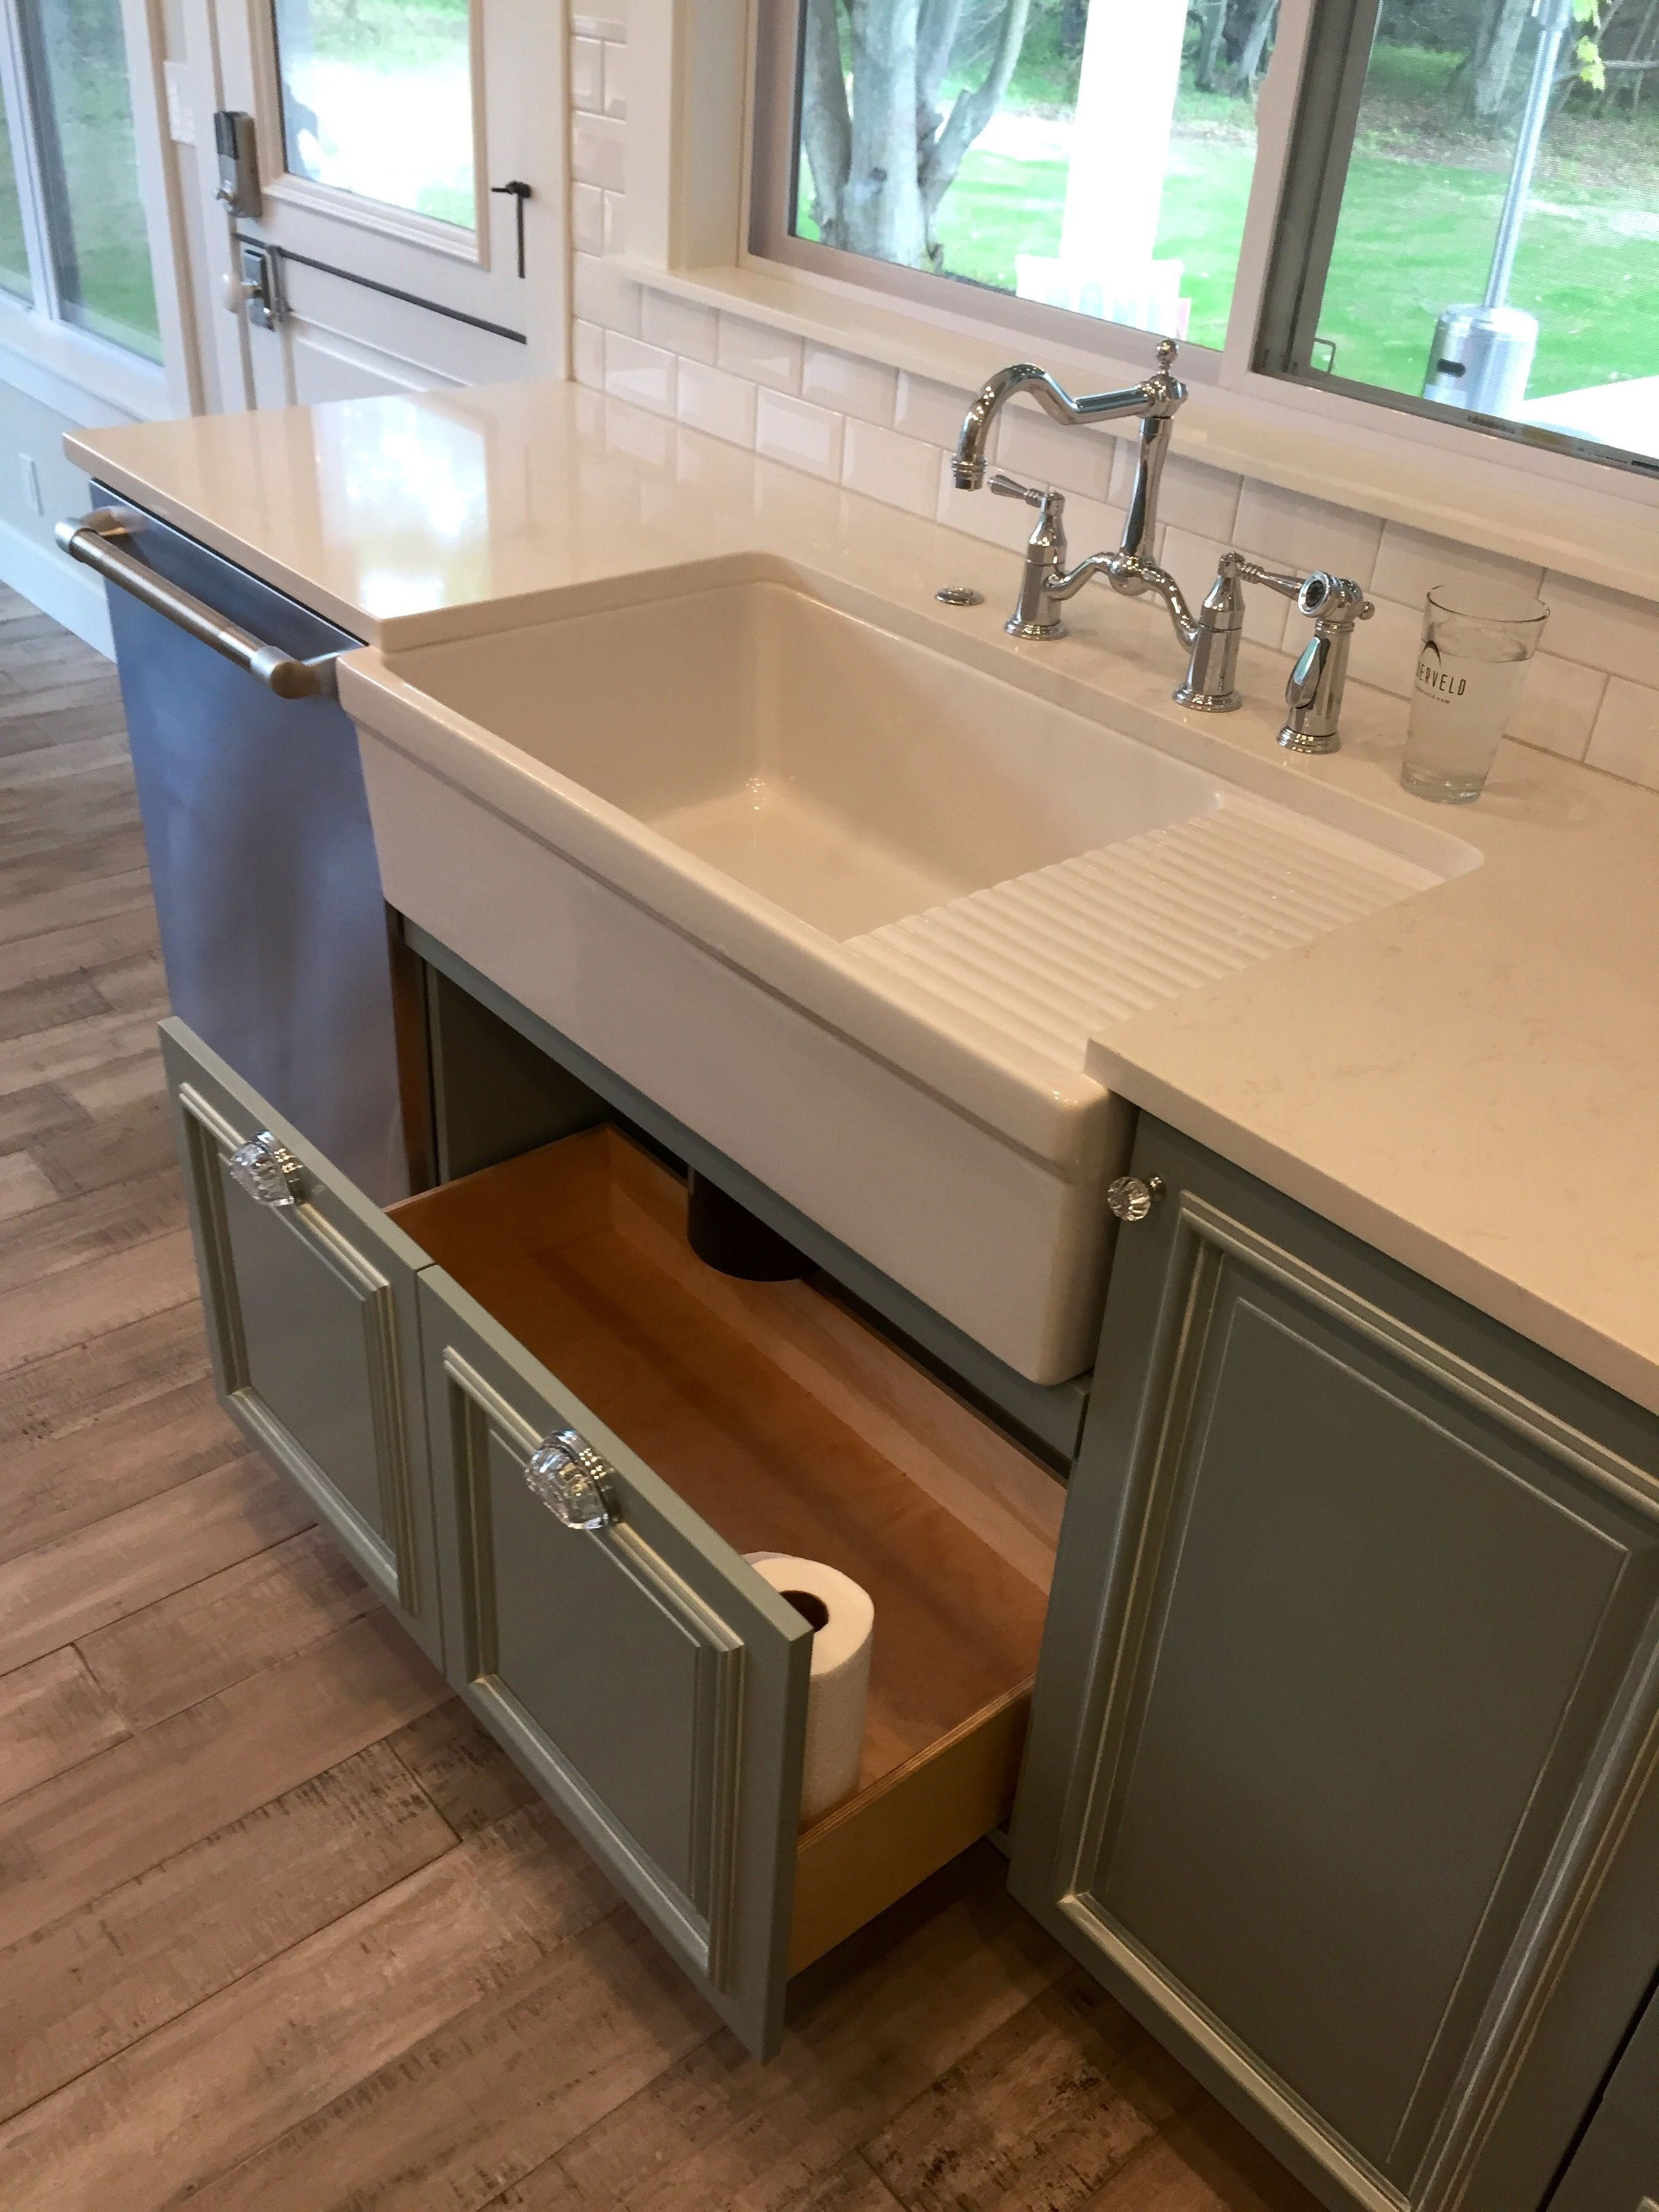 Farmhouse apron front sink featuring a drawer disguised as doors